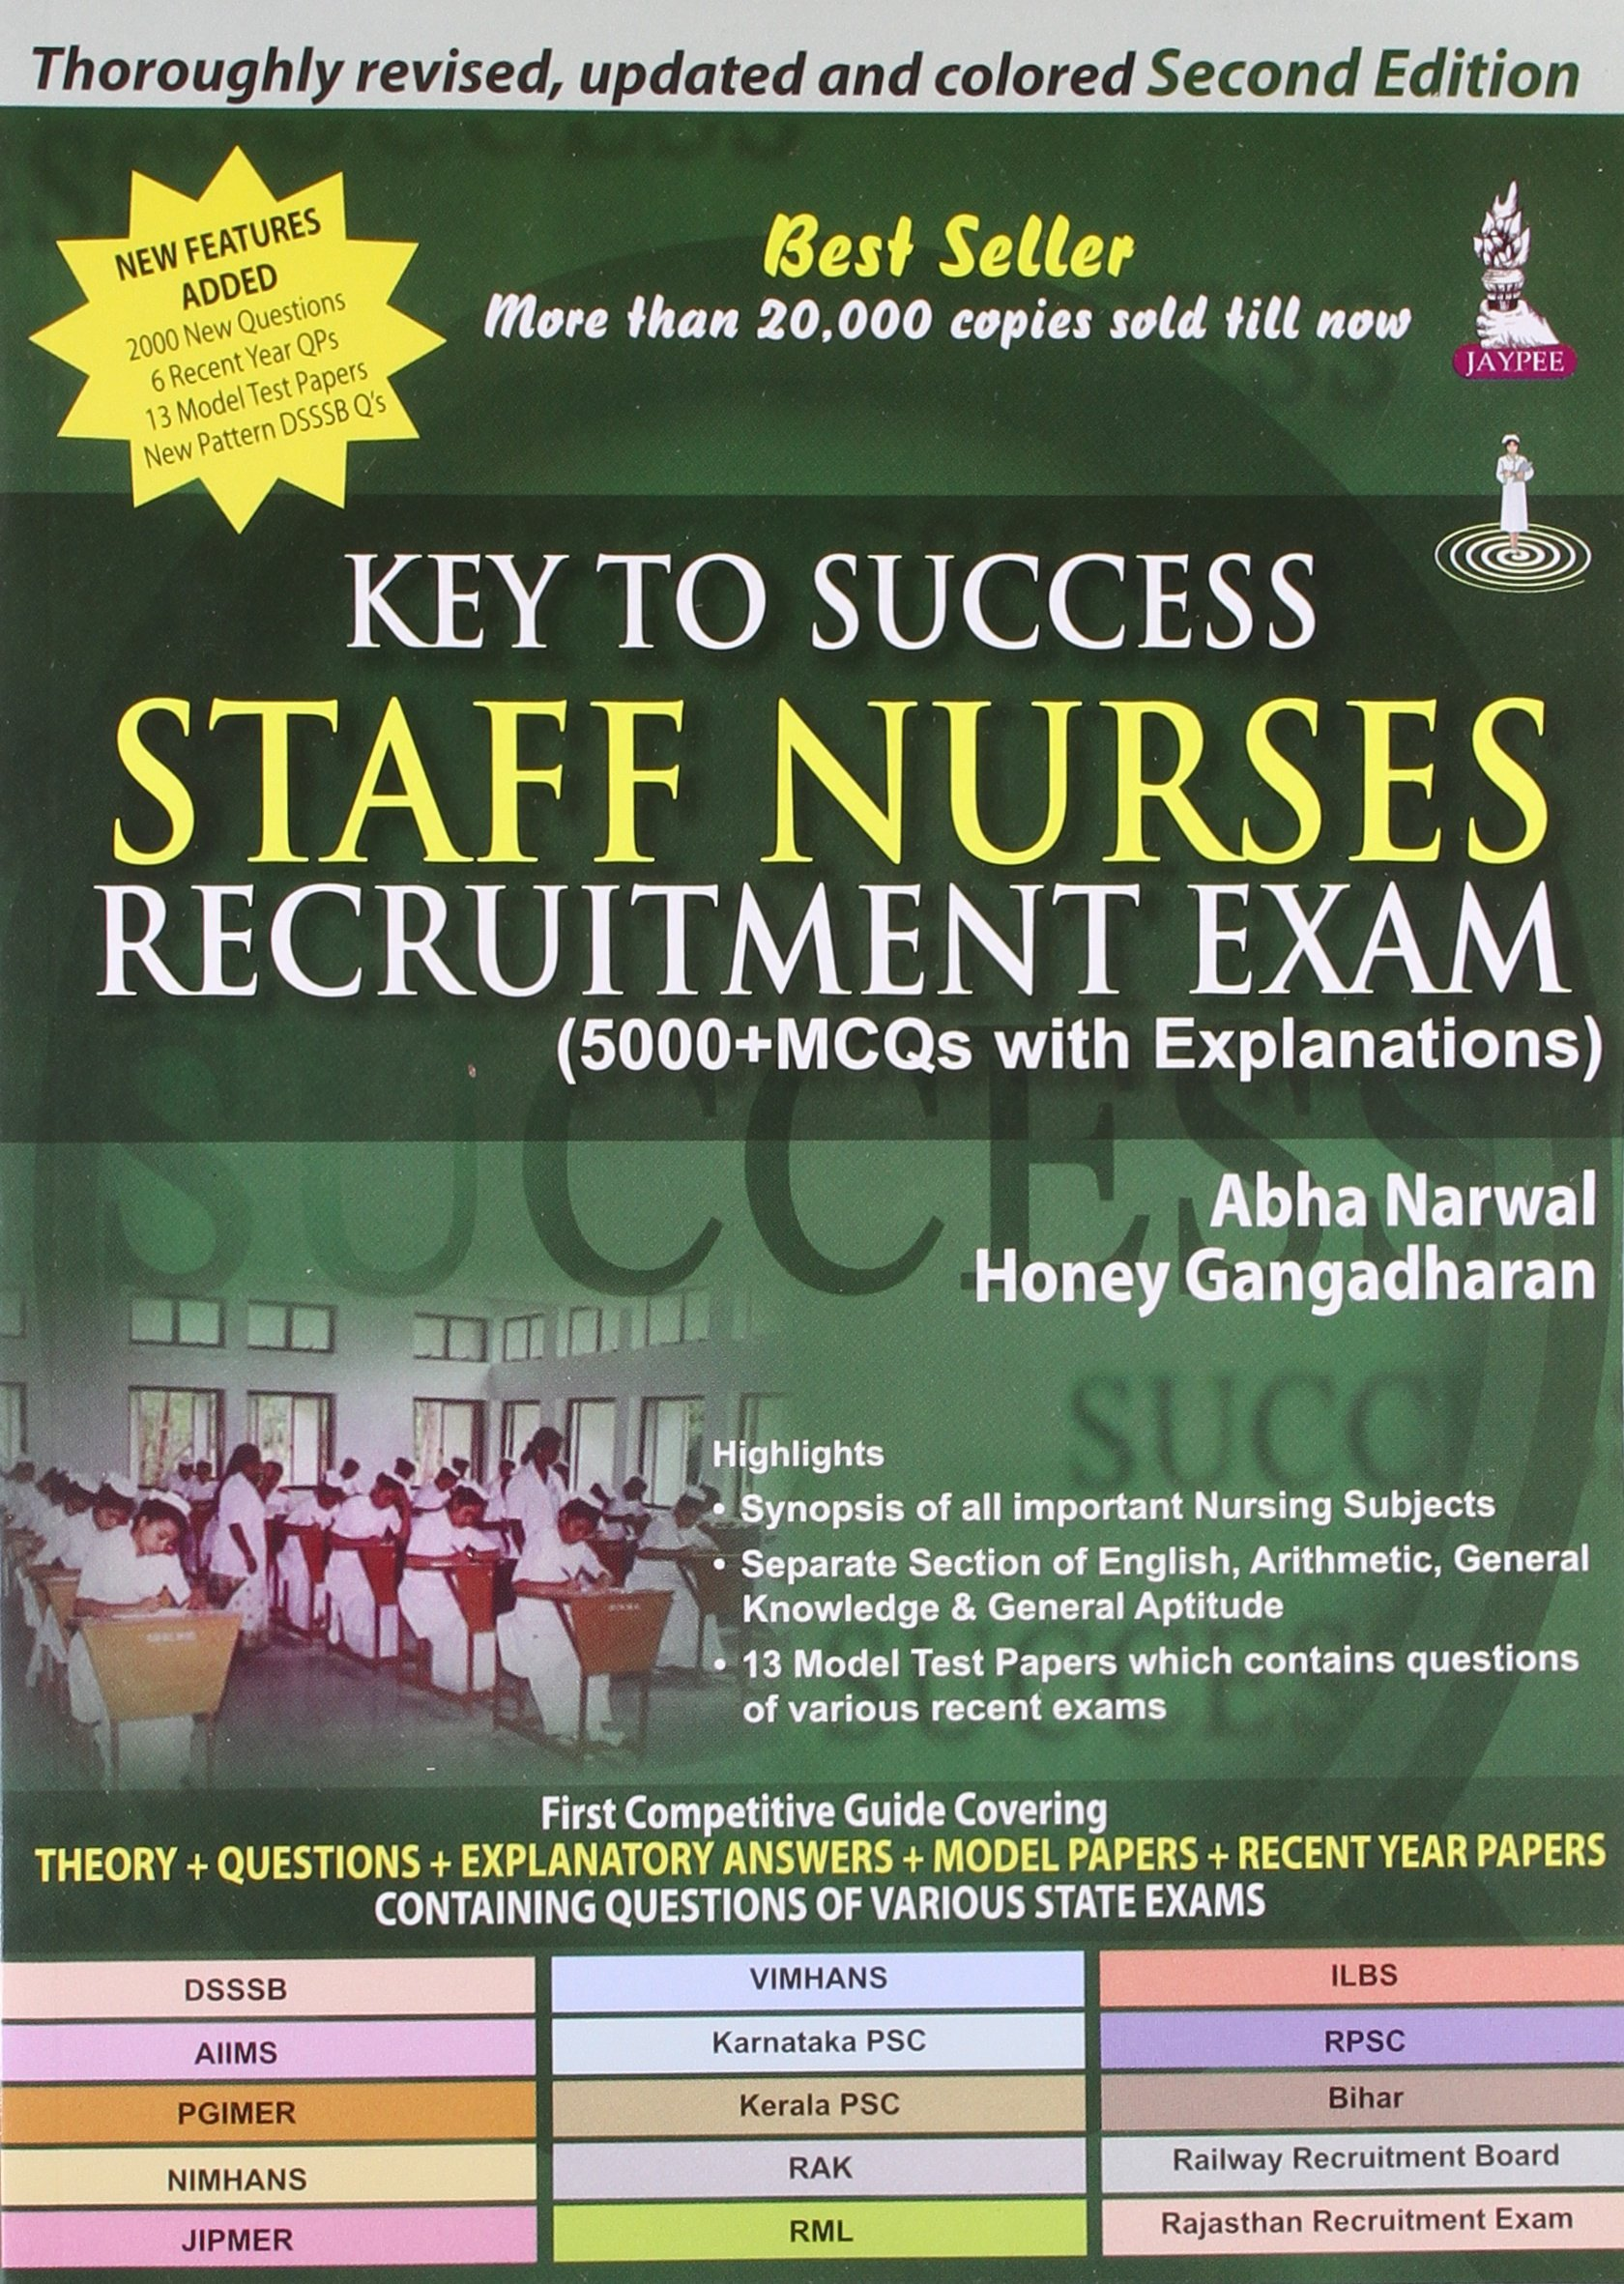 staff nurse recruitment exam questions and answers